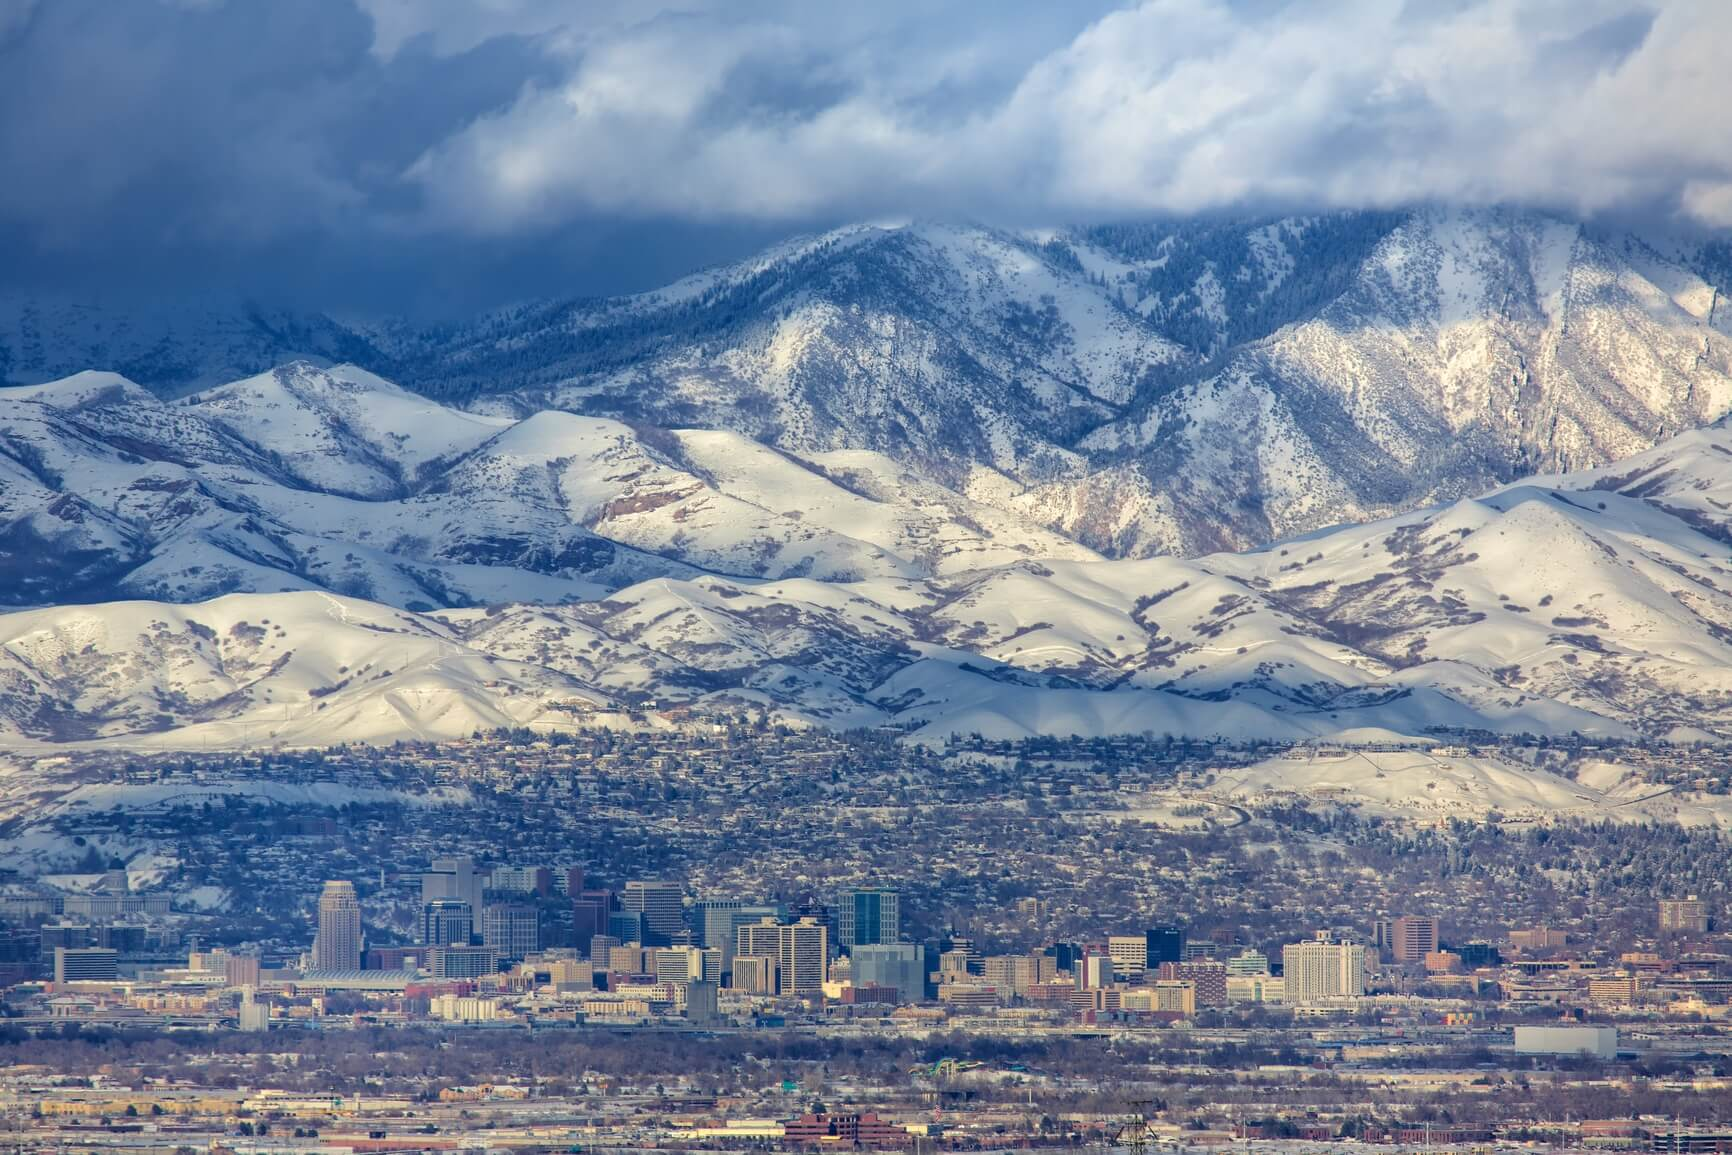 Non-stop from Chicago to Salt Lake City, Utah (& vice versa) for only $136 roundtrip (Oct-Nov dates)